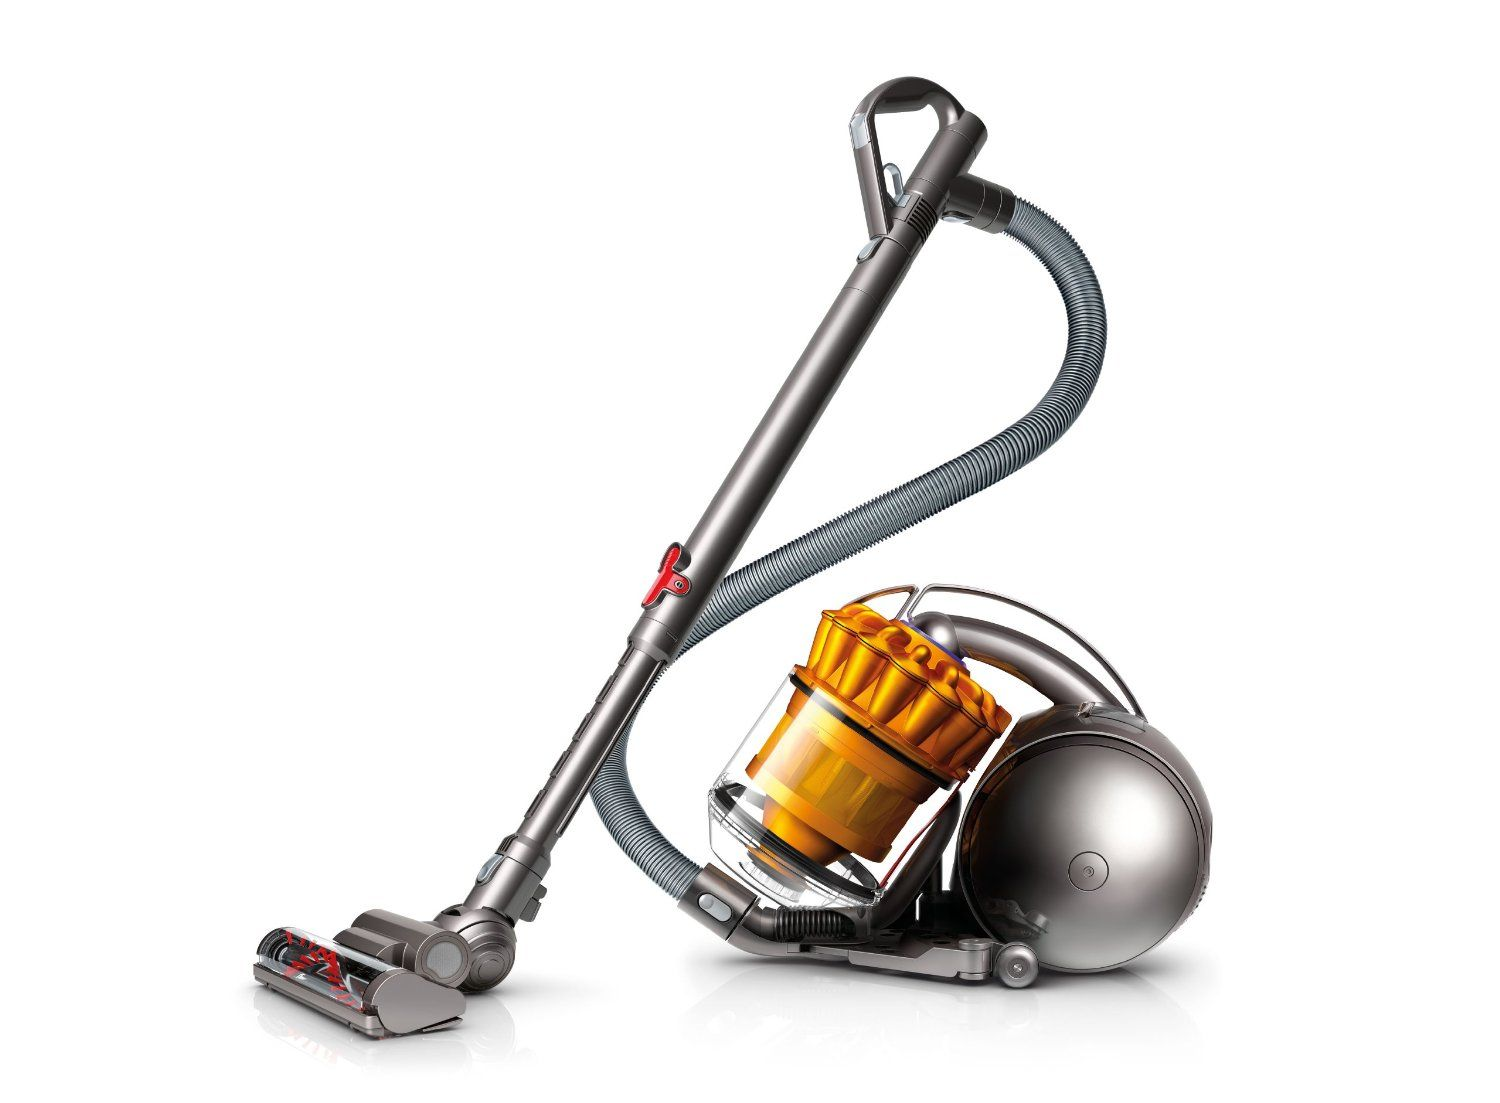 Dyson Ball Multifloor Canister Vacuum